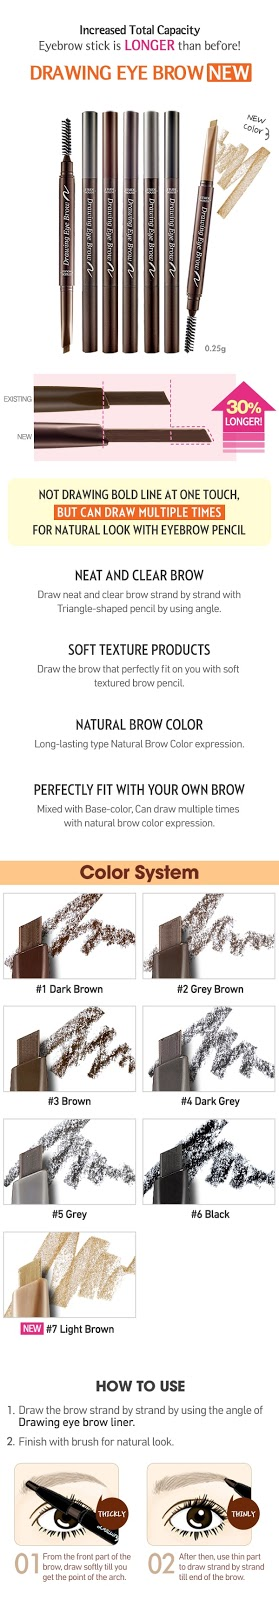 infografis review etude house drawing eyebrow